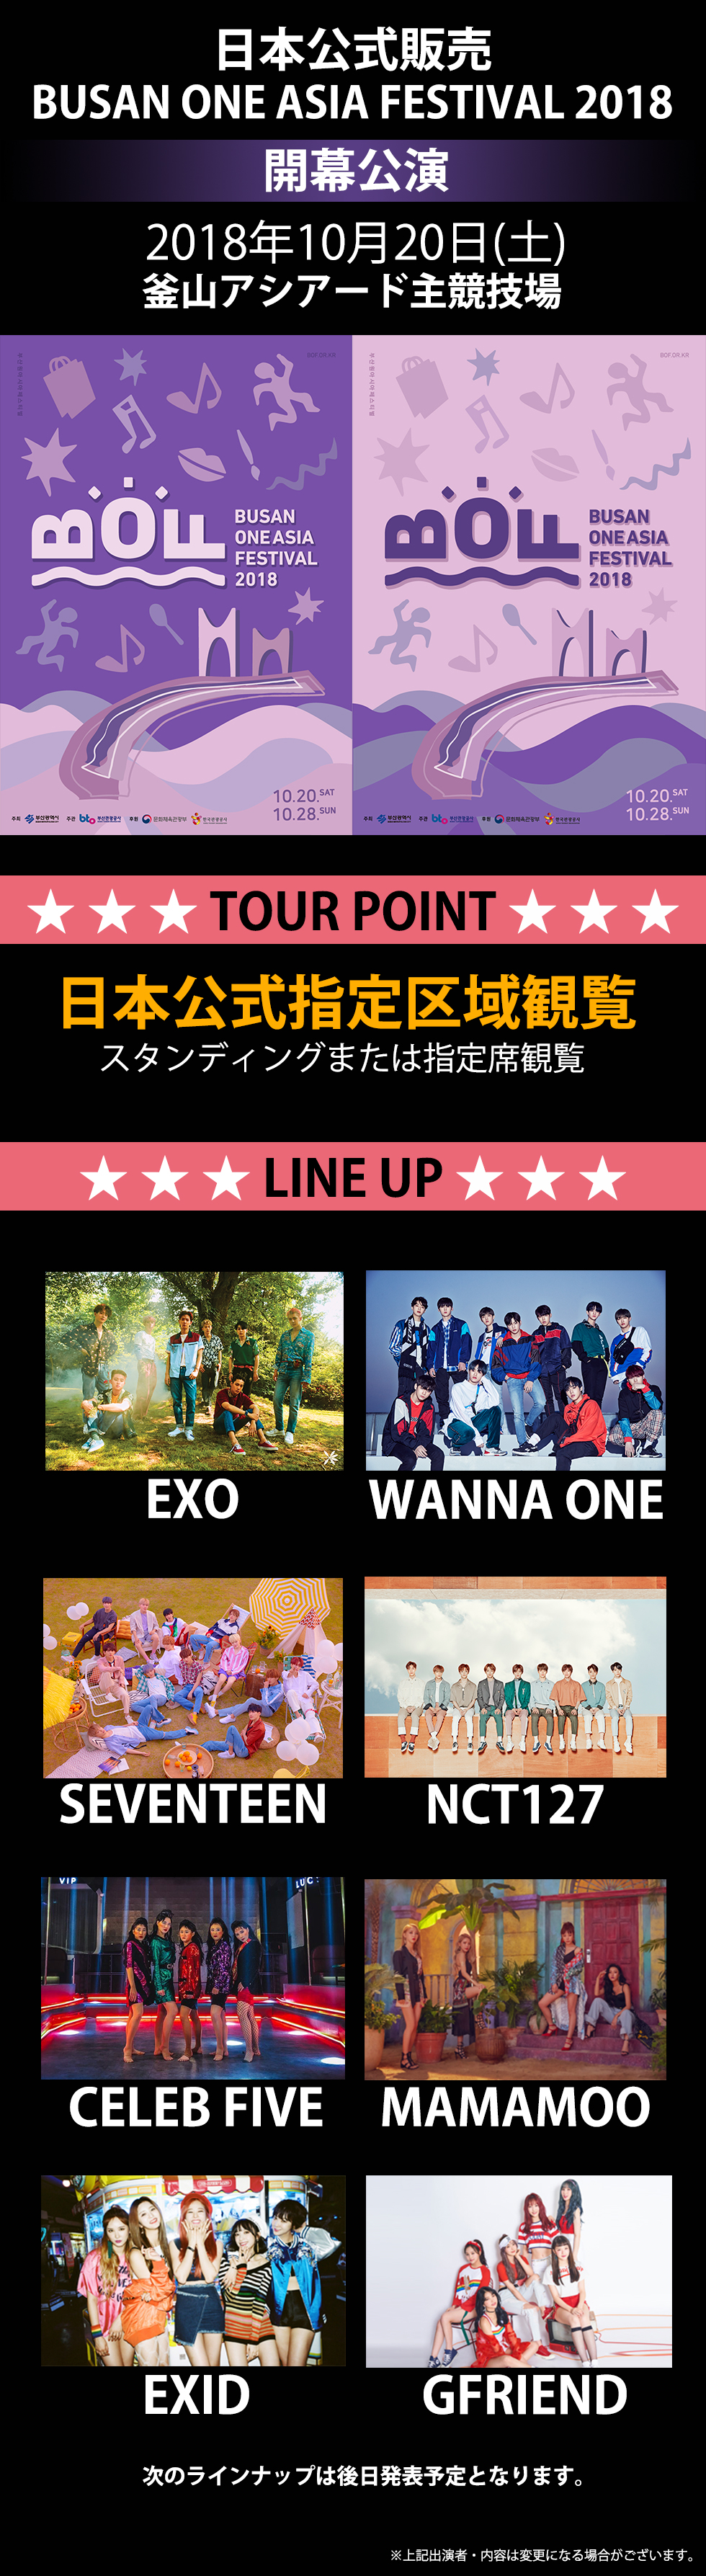 BUSAN ONE ASIA FESTIVAL 2018 - 開幕式